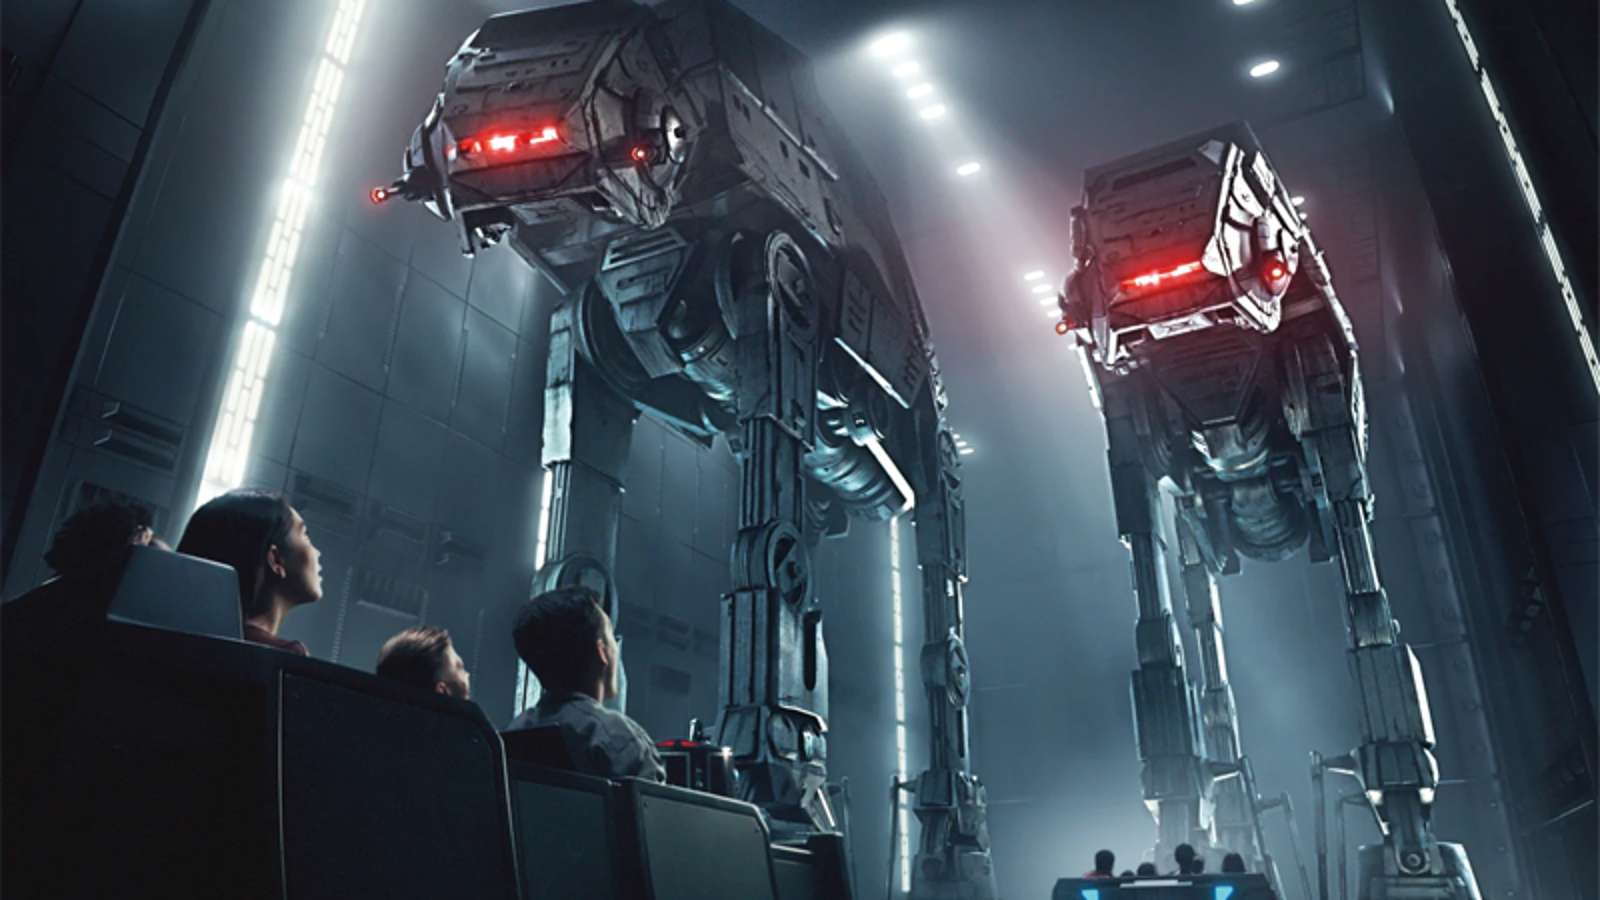 Star Wars: Galaxy's Edge's Big New Ride Is Coming to Disney World This December